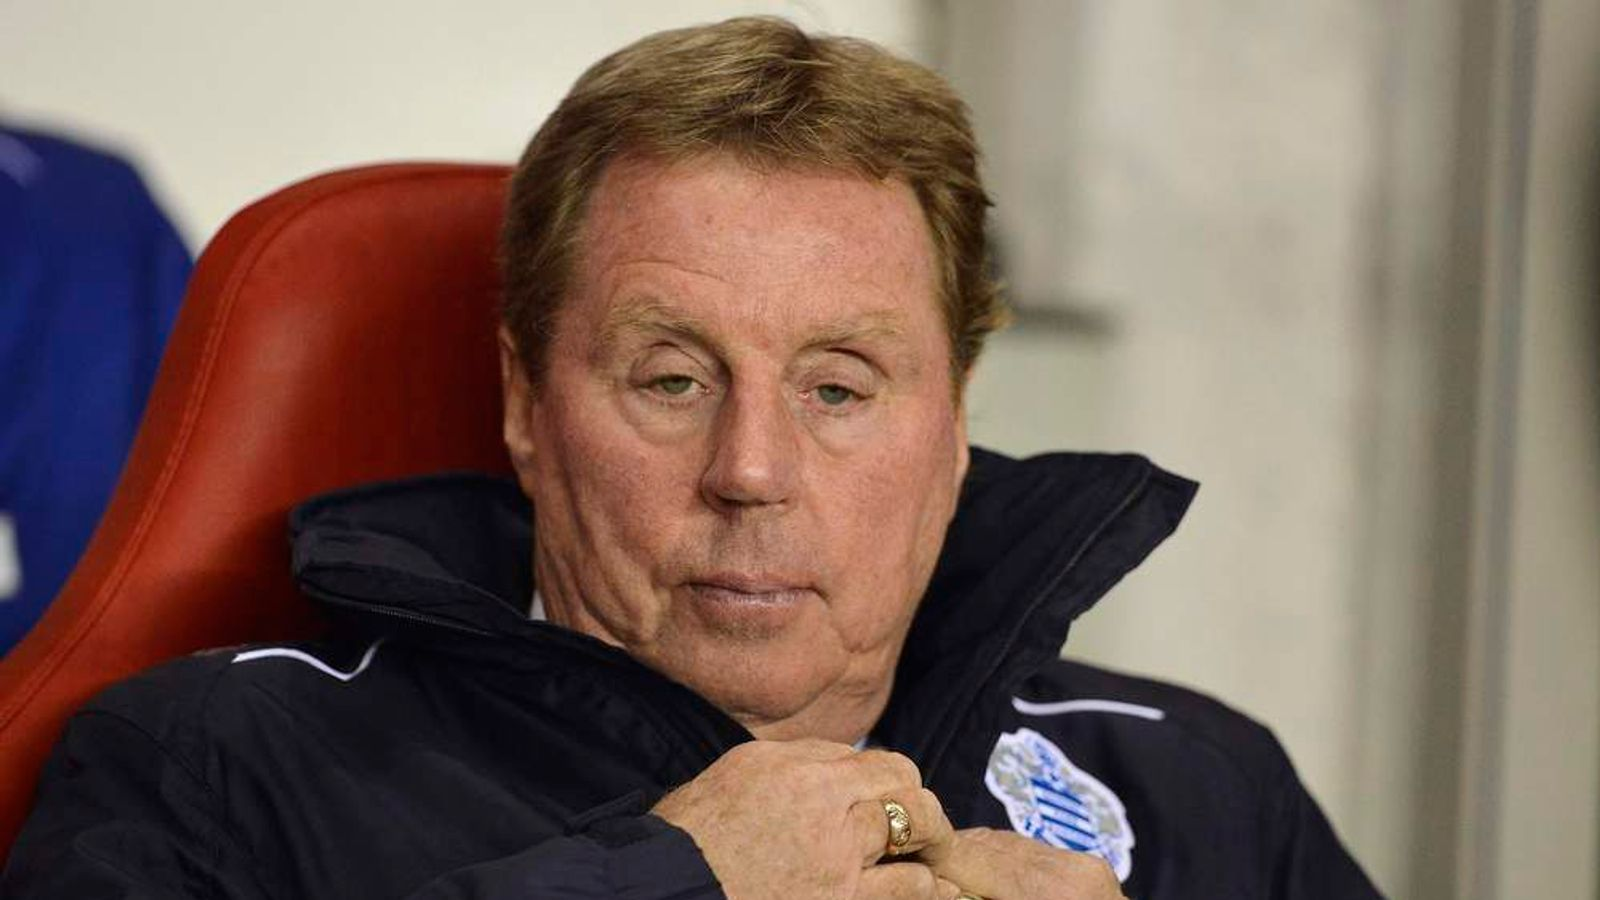 Queens Park Rangers coach Redknapp looks on ahead of their English Premier League soccer match against Sunderland in Sunderland